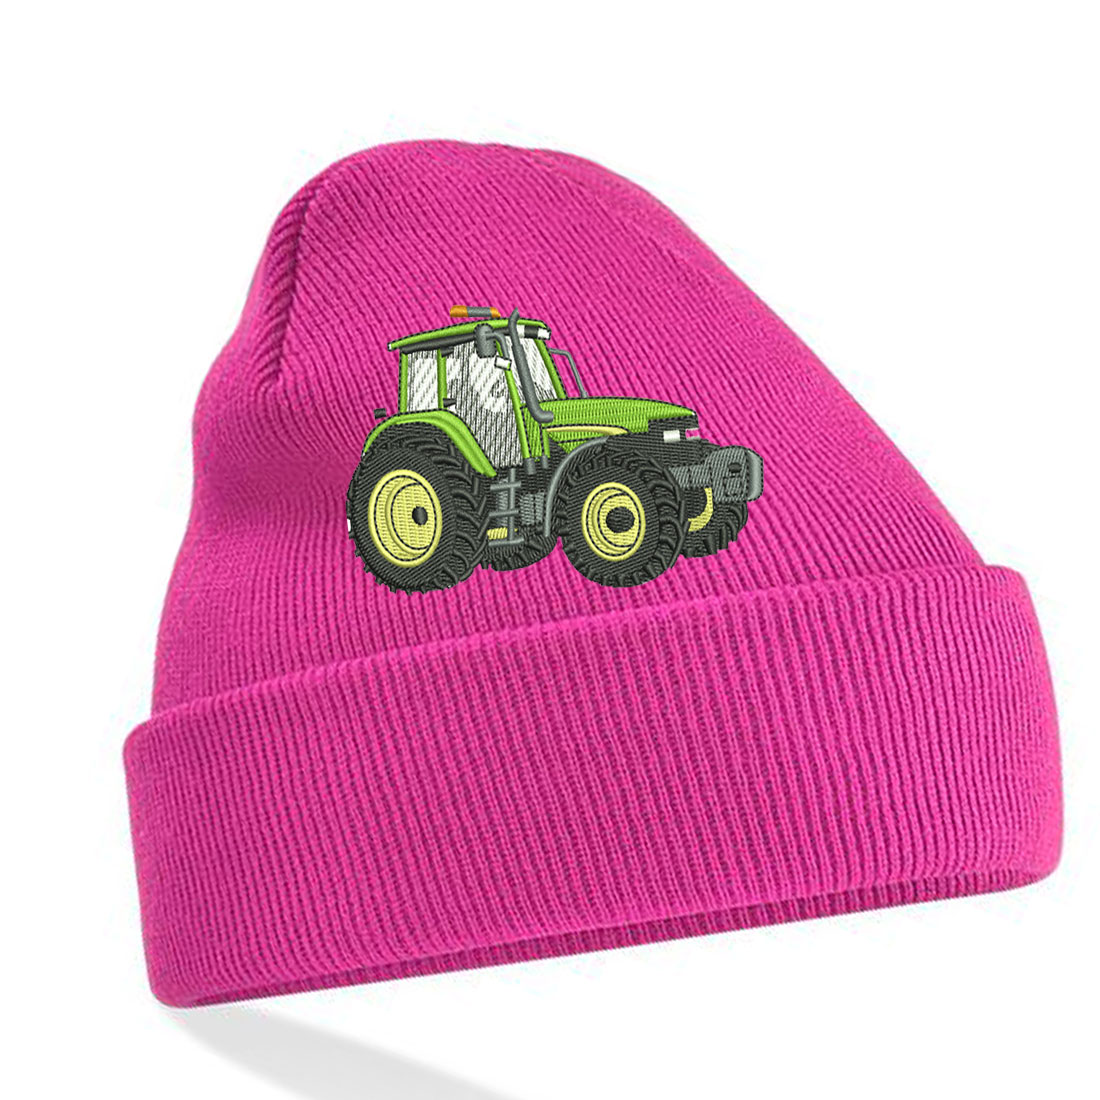 Embroidered Green Tractor Unisex Beanie with cuff